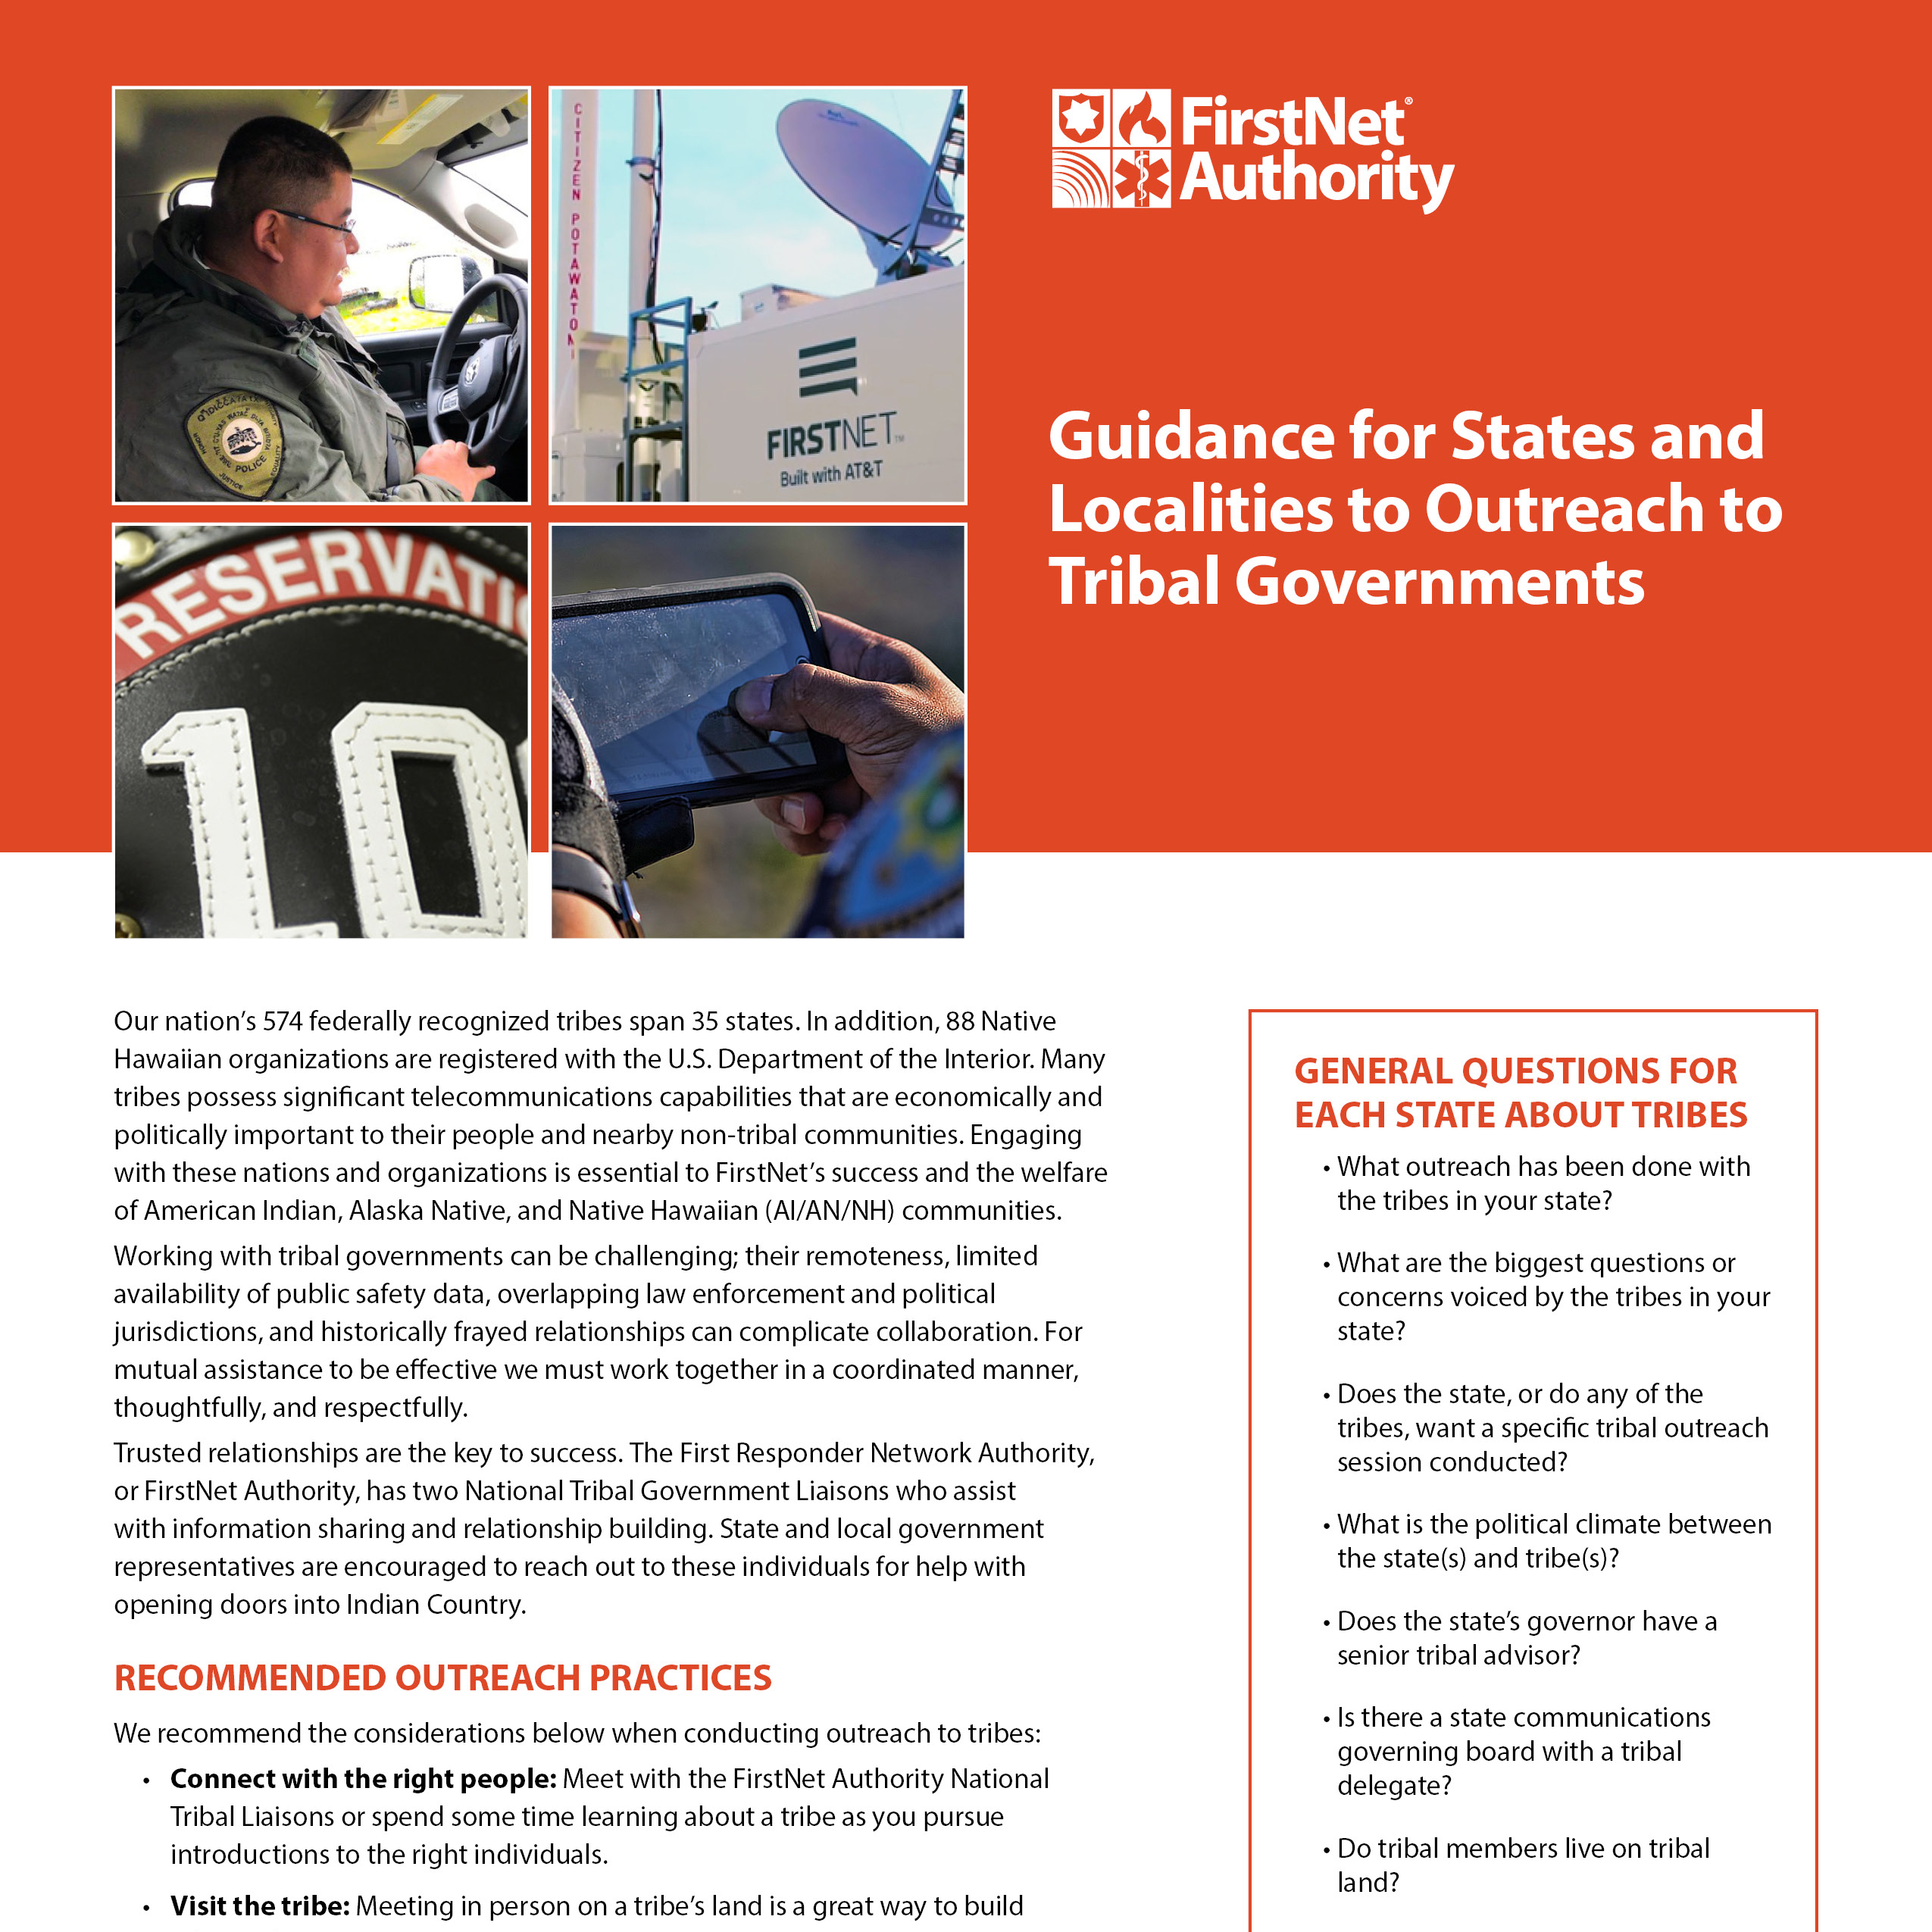 Guidance for States and Localities to Outreach to Tribal Governments Cover